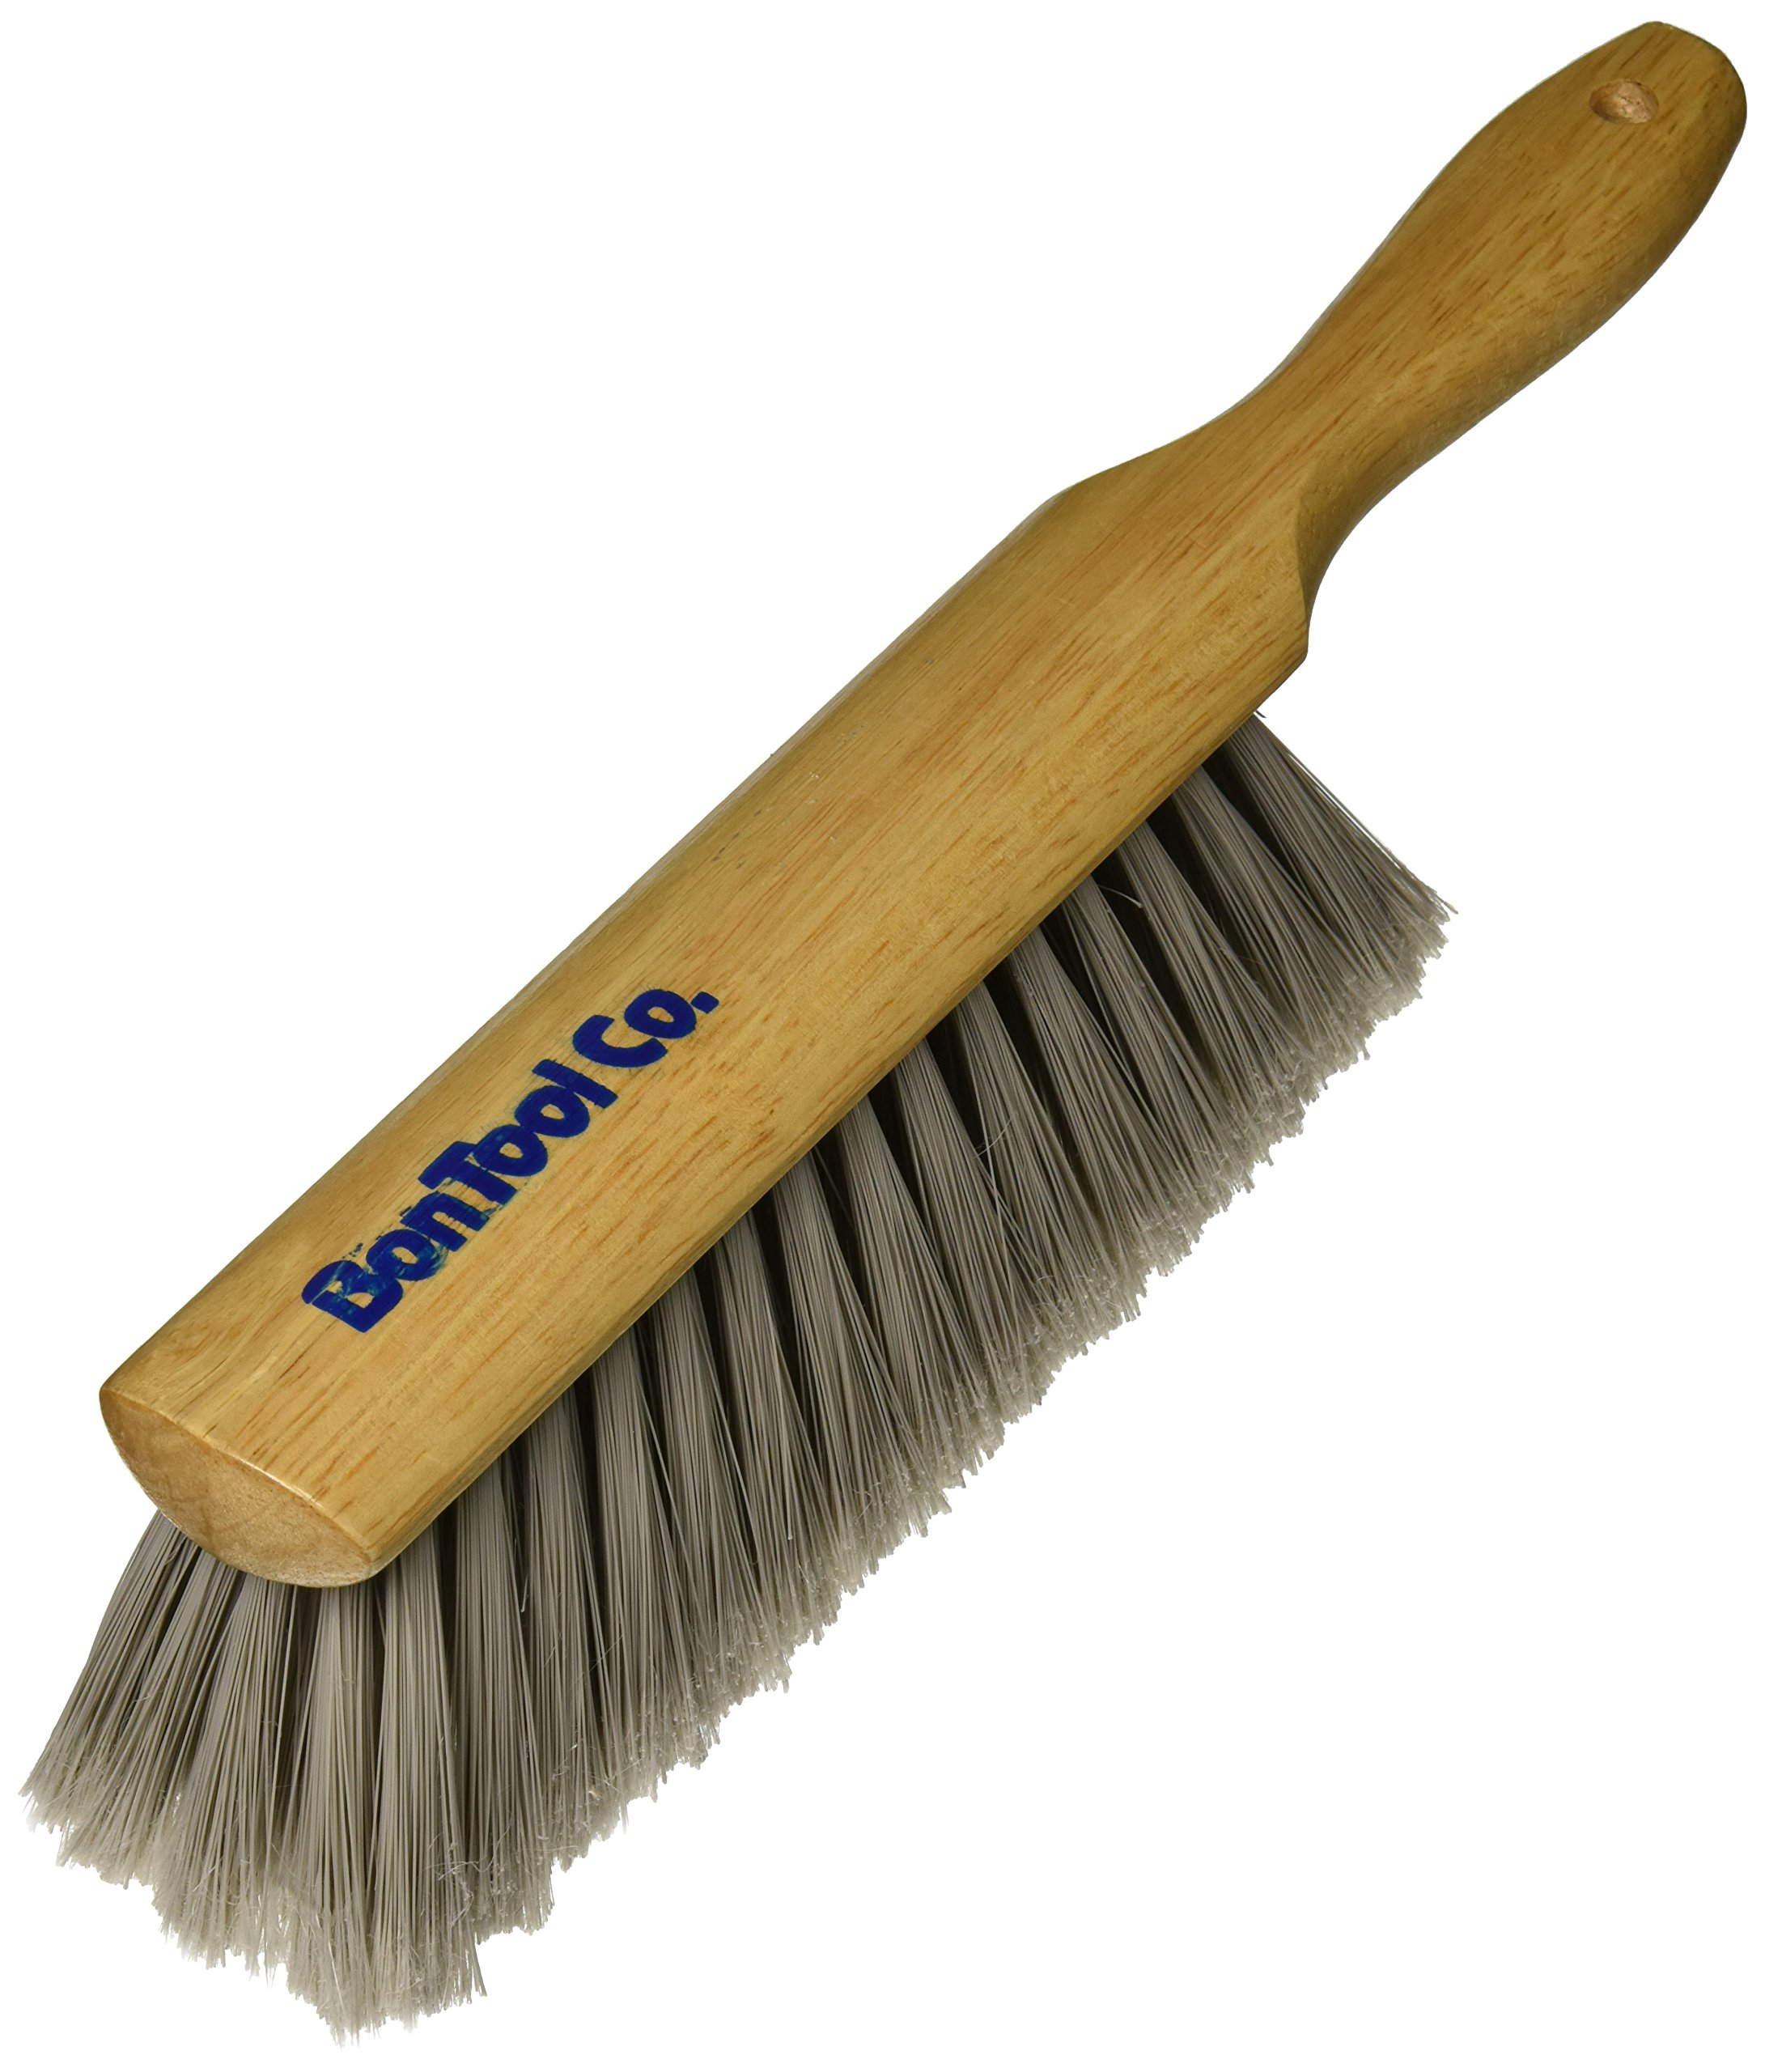 Bon 84-155 13-1/2-Inch Soft Silver Tipped Flagged Counter Brush